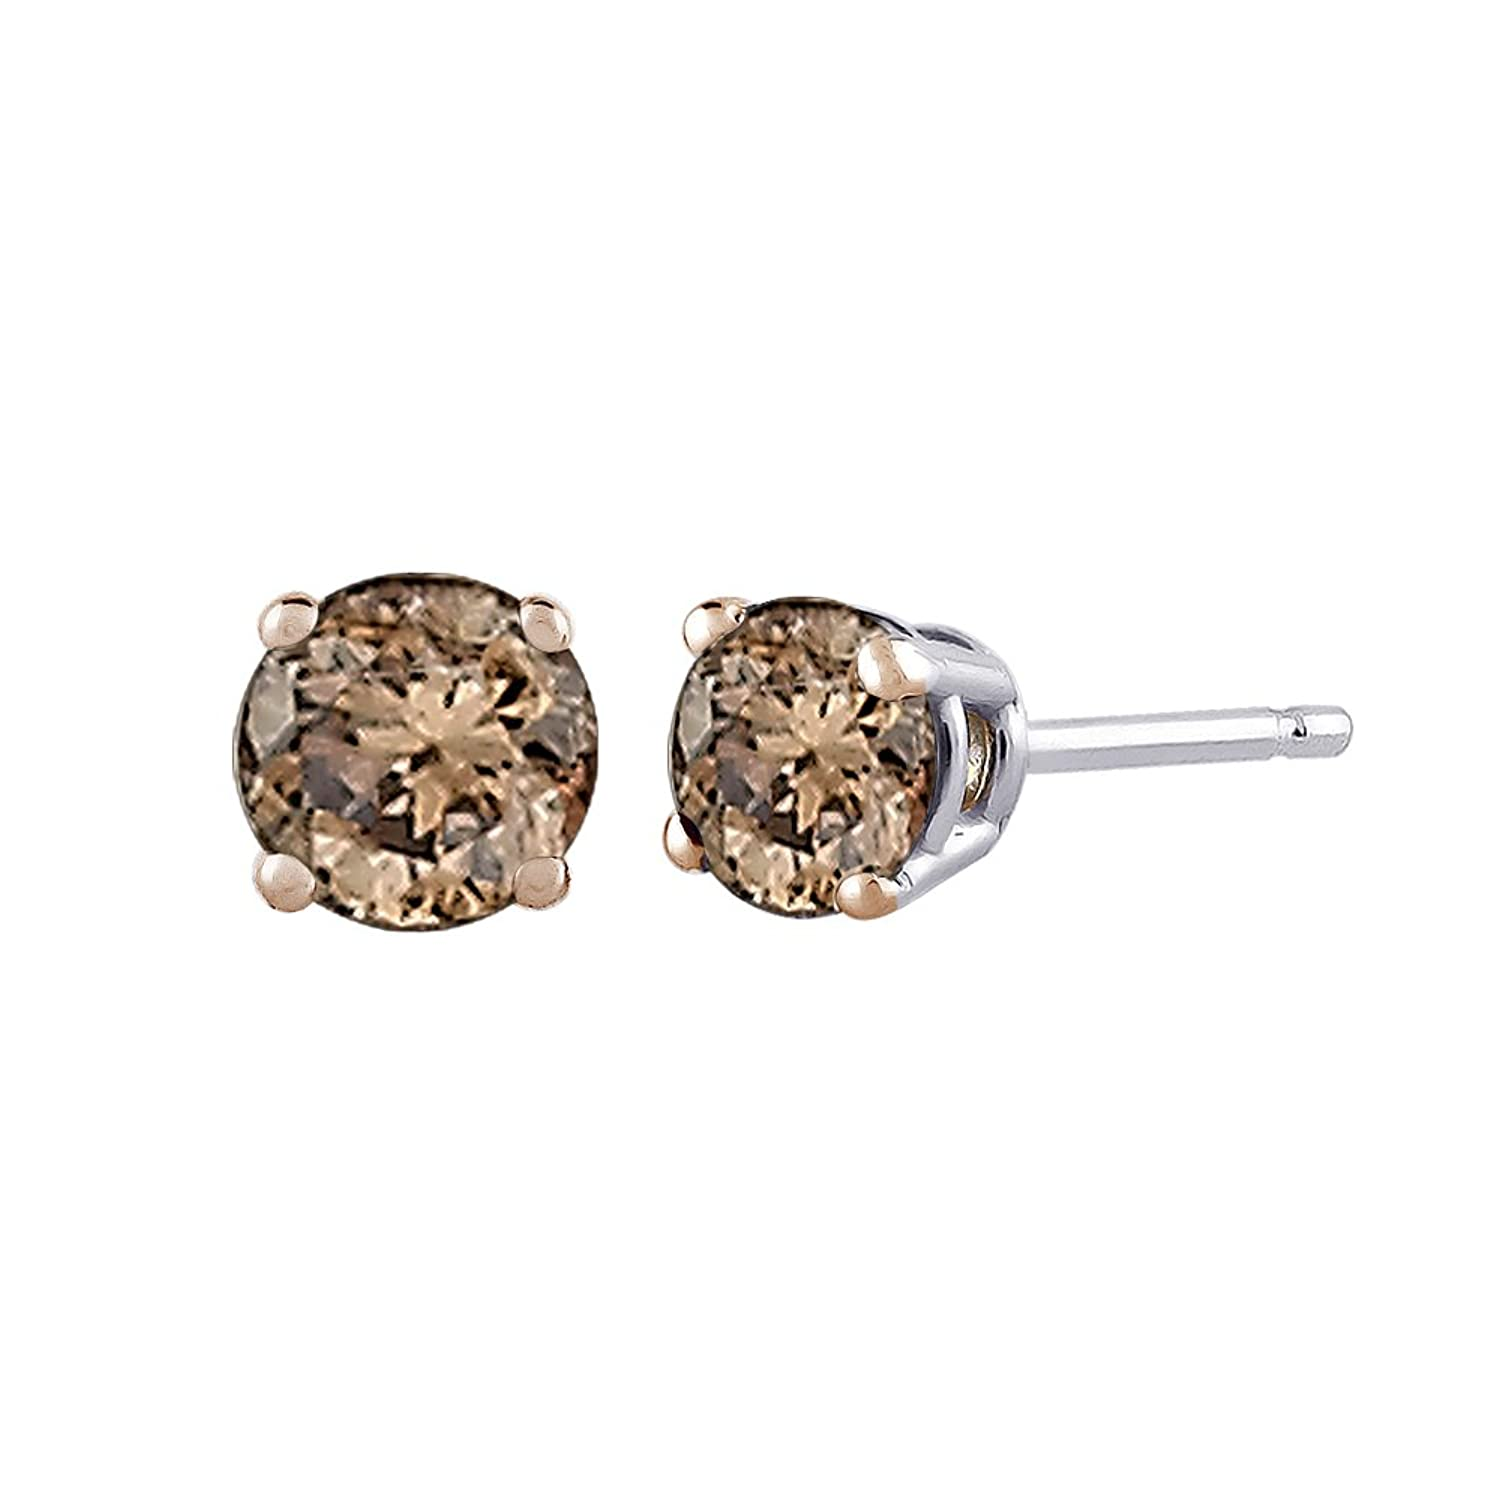 rose amp champagne from image jewellery earring diamond stud earrings gold